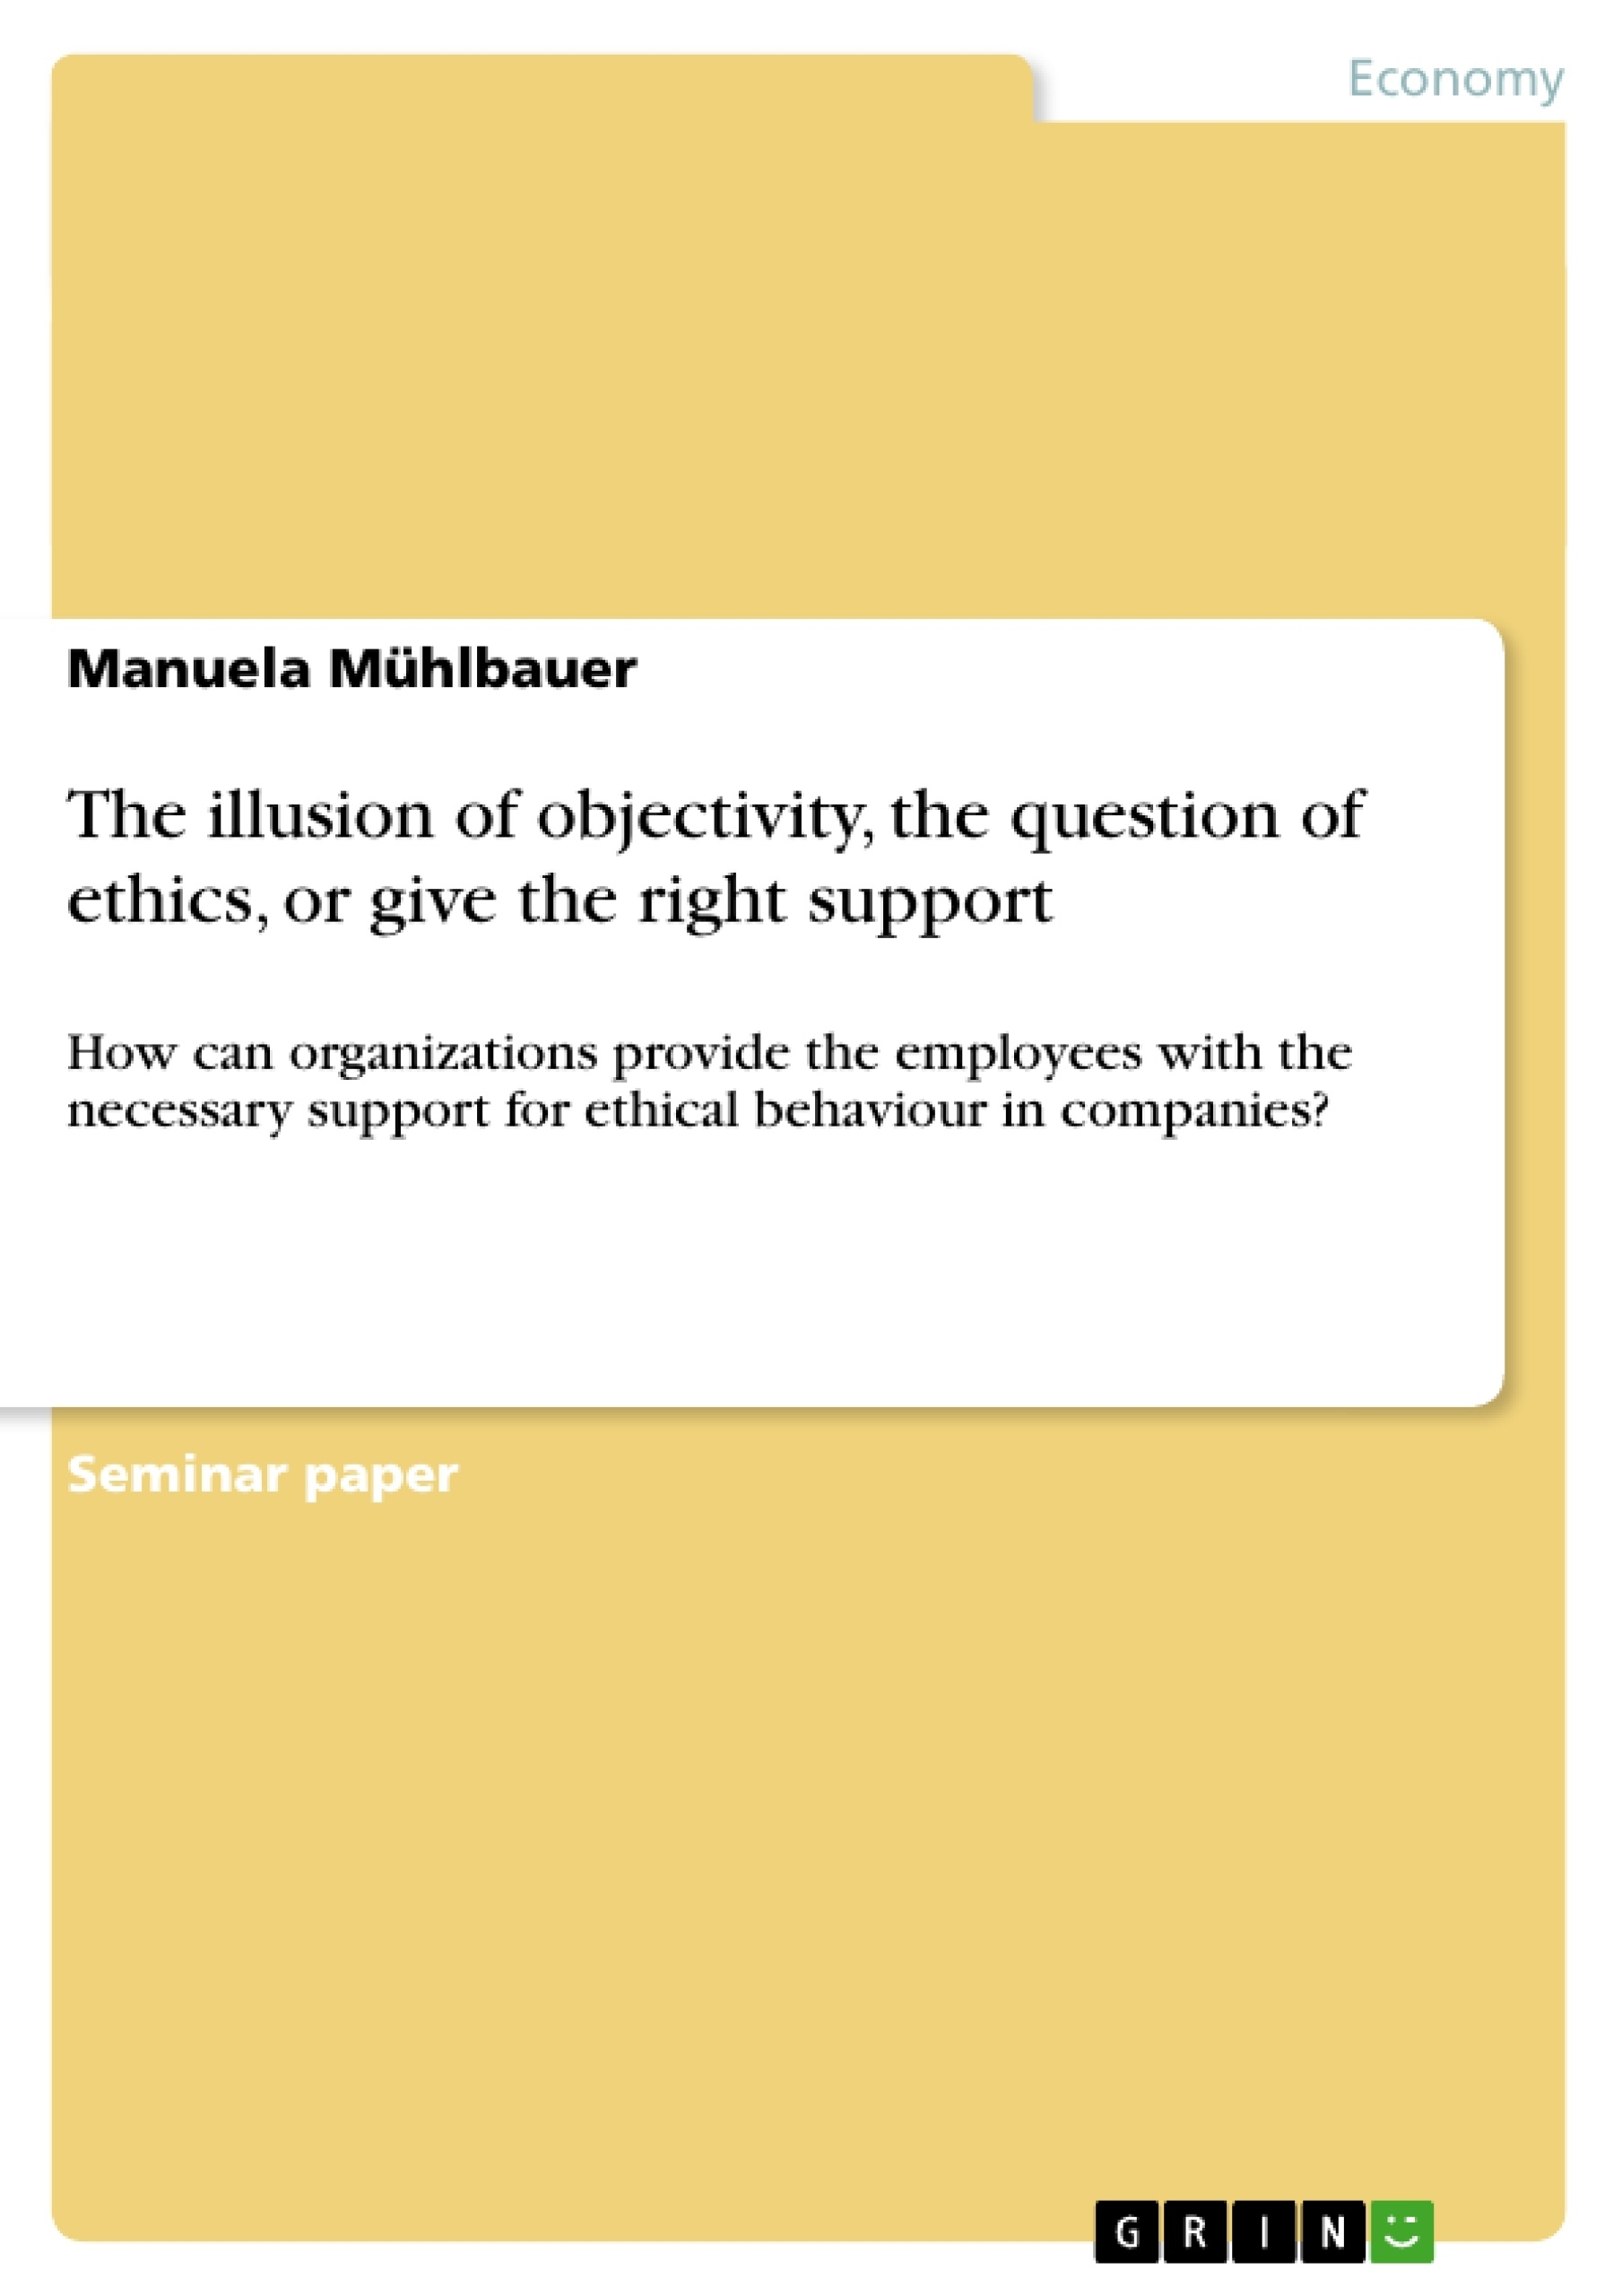 Title: The illusion of objectivity, the question of ethics, or give the right support